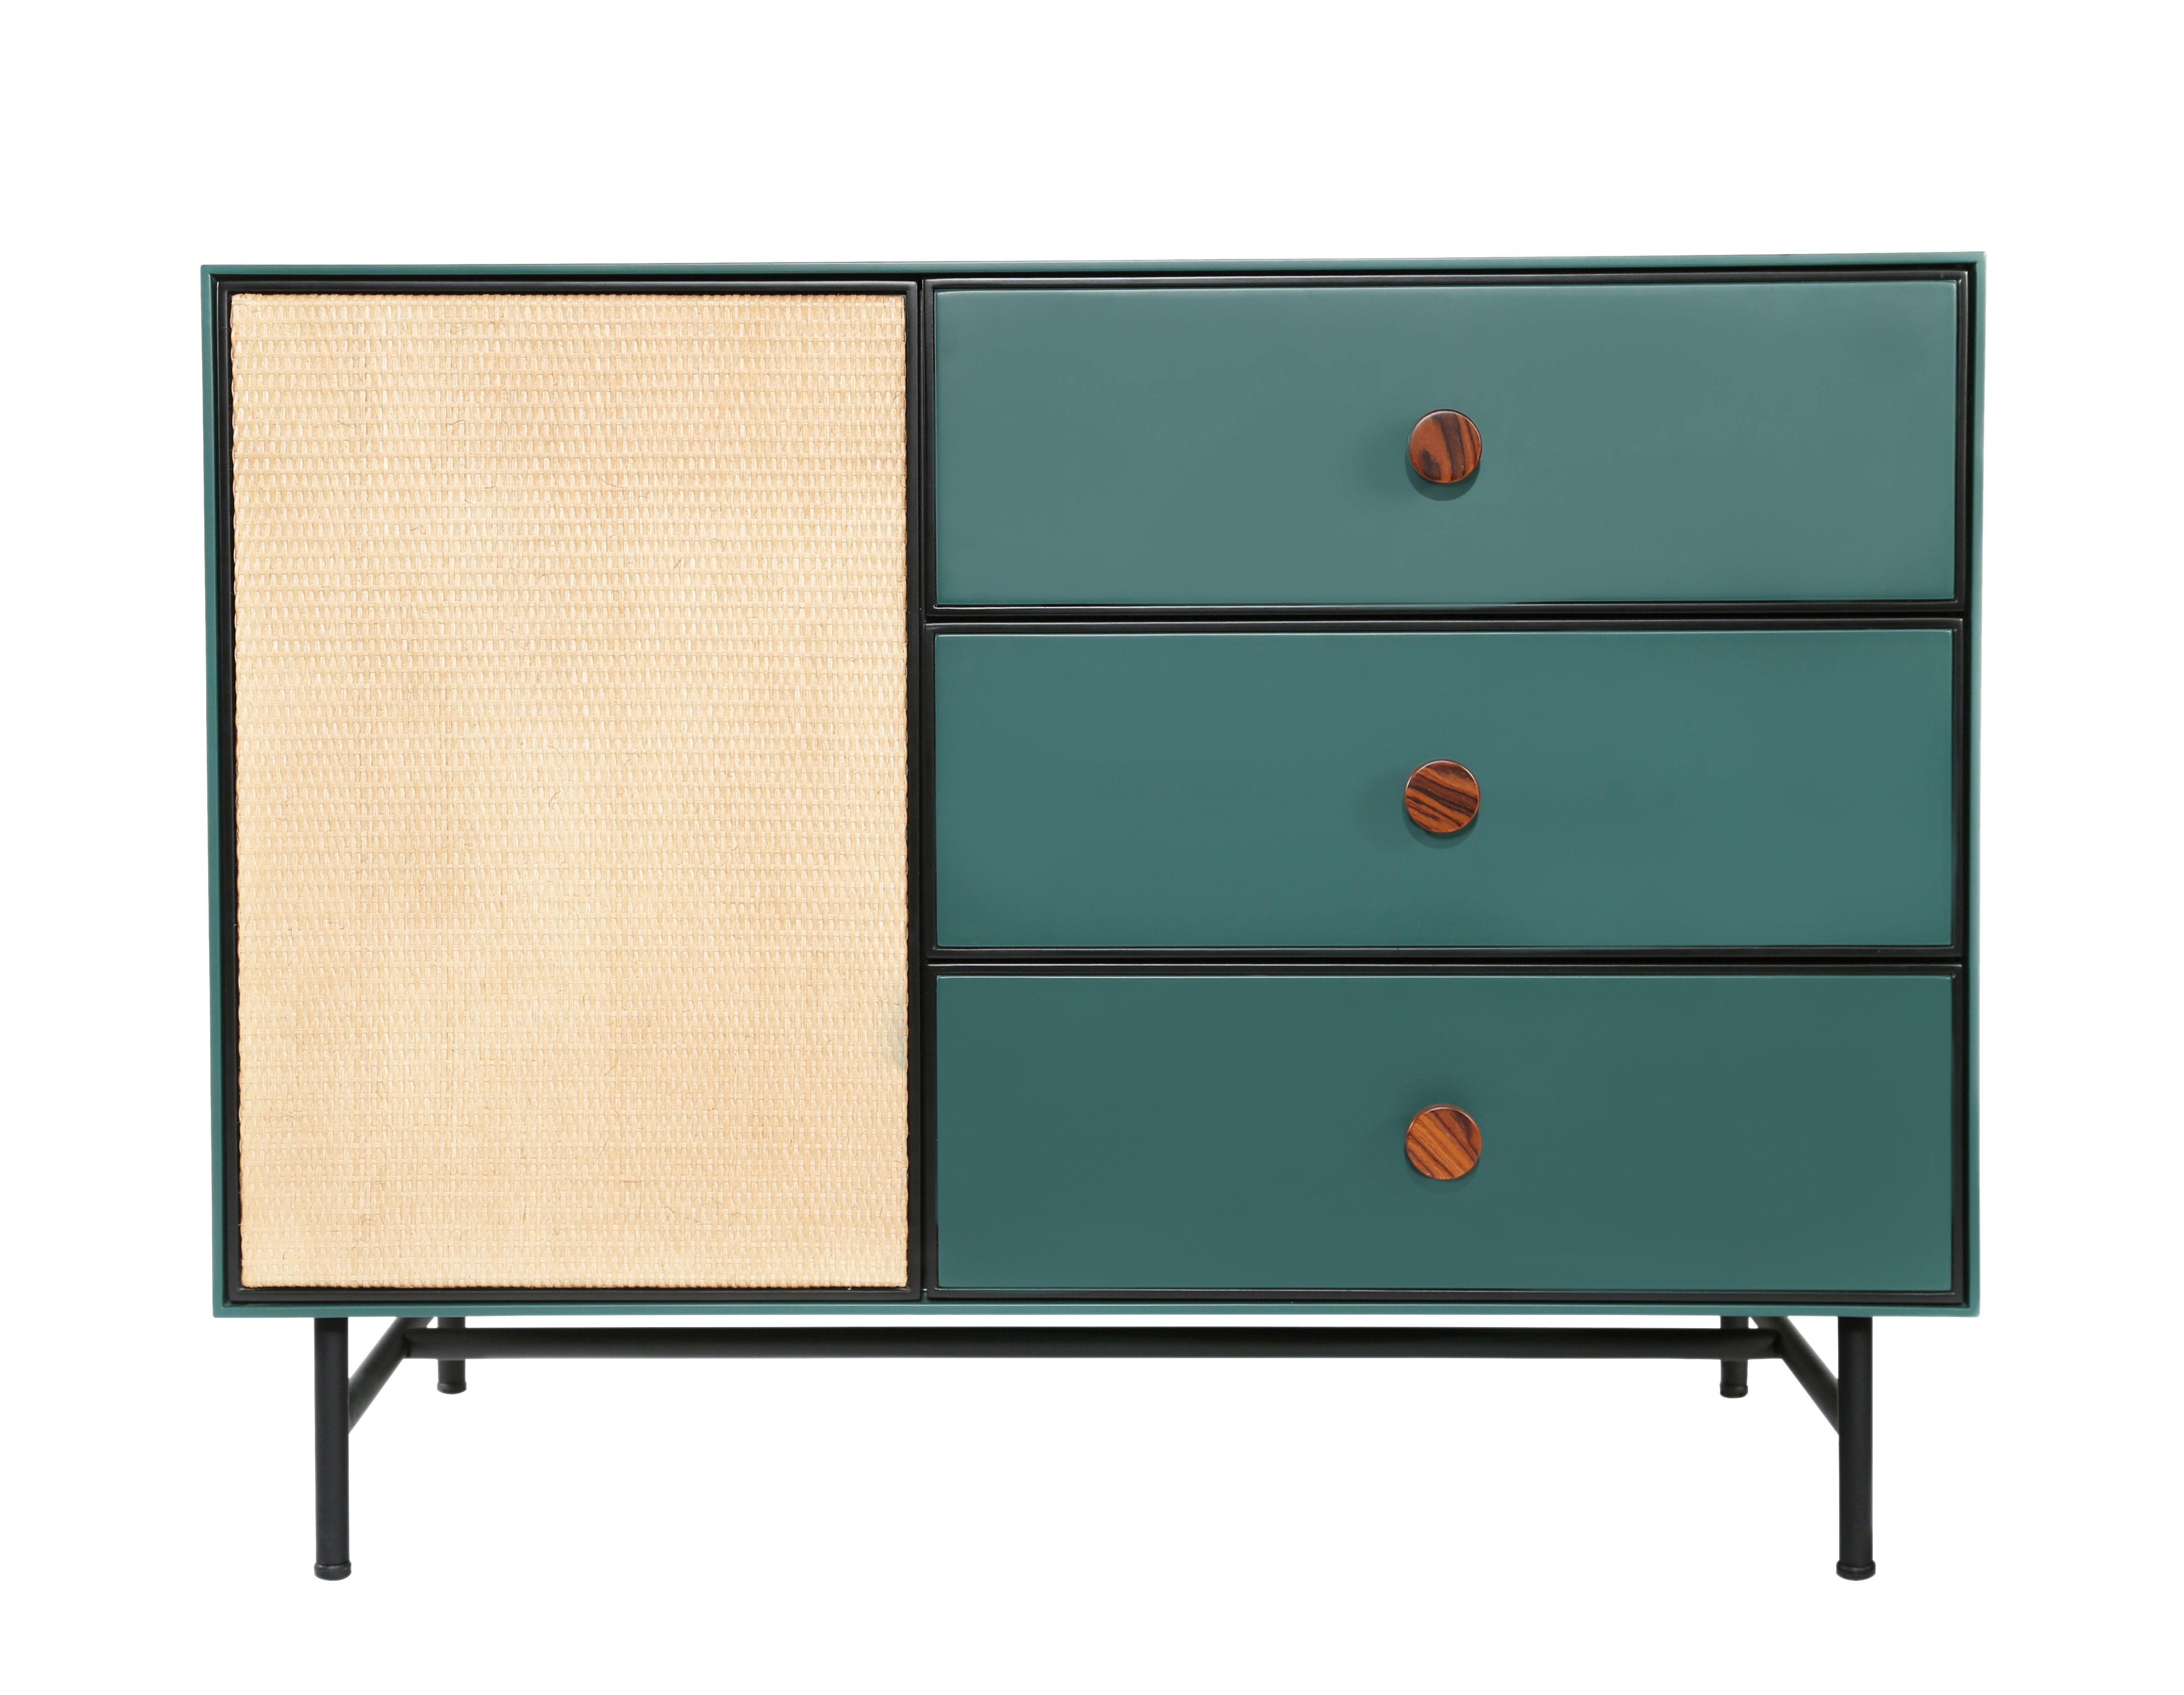 Furniture - Dressers & Storage Units - Essence Chest of drawers - / Wood & rattan by Maison Sarah Lavoine - green & rattan - Lacquered steel, Lacquered wood, Rattan, Rosewood, Velvet